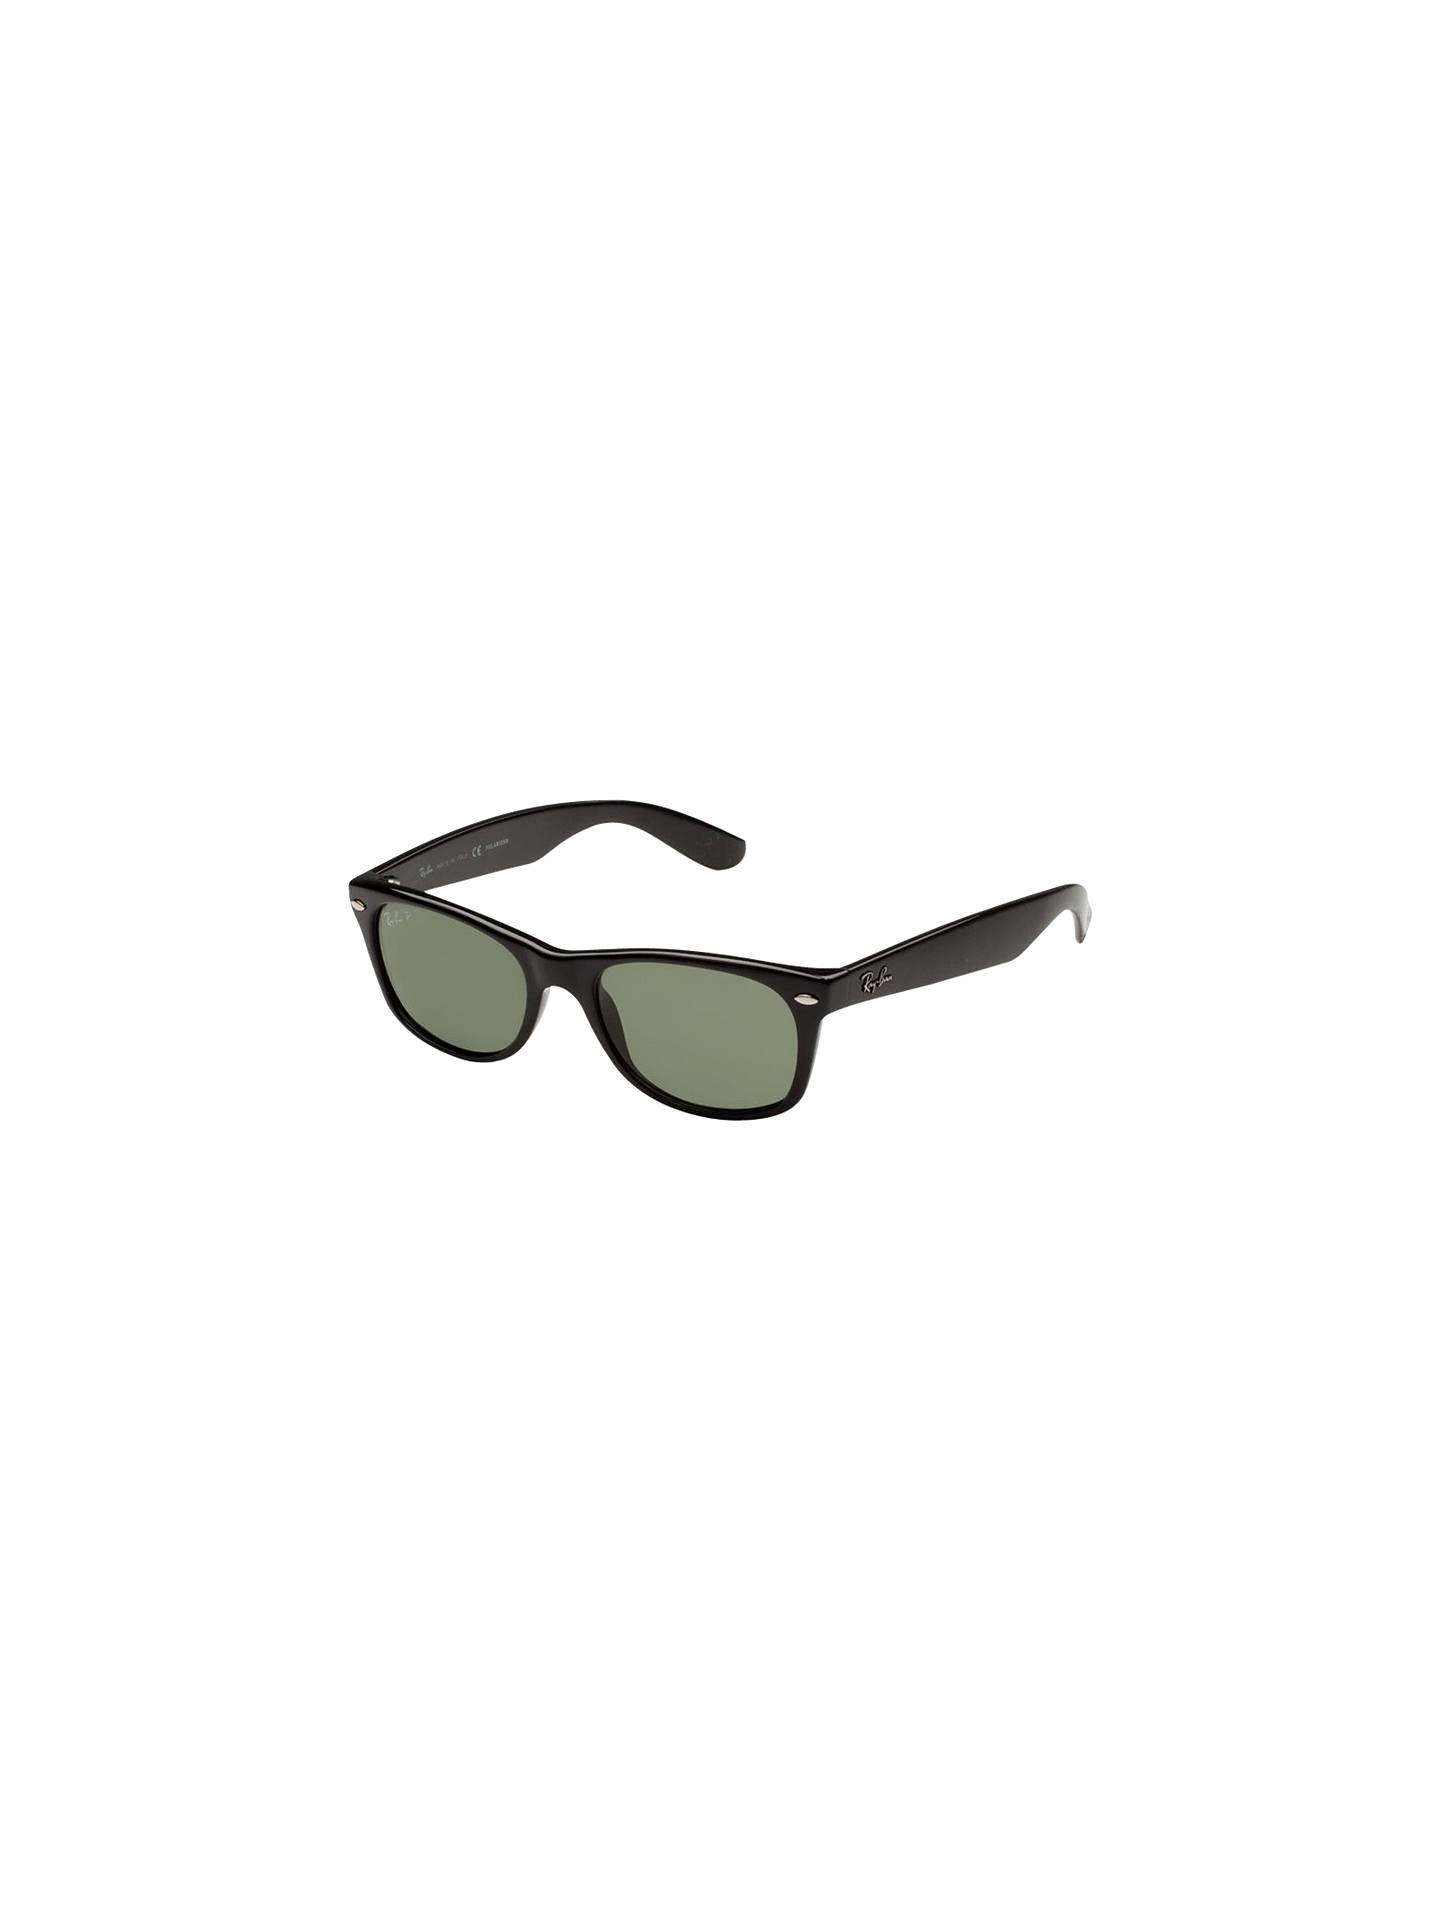 53dae266e Buy Ray-Ban RB2132 Original Wayfarer Polarised Sunglasses, Black Online at  johnlewis.com ...